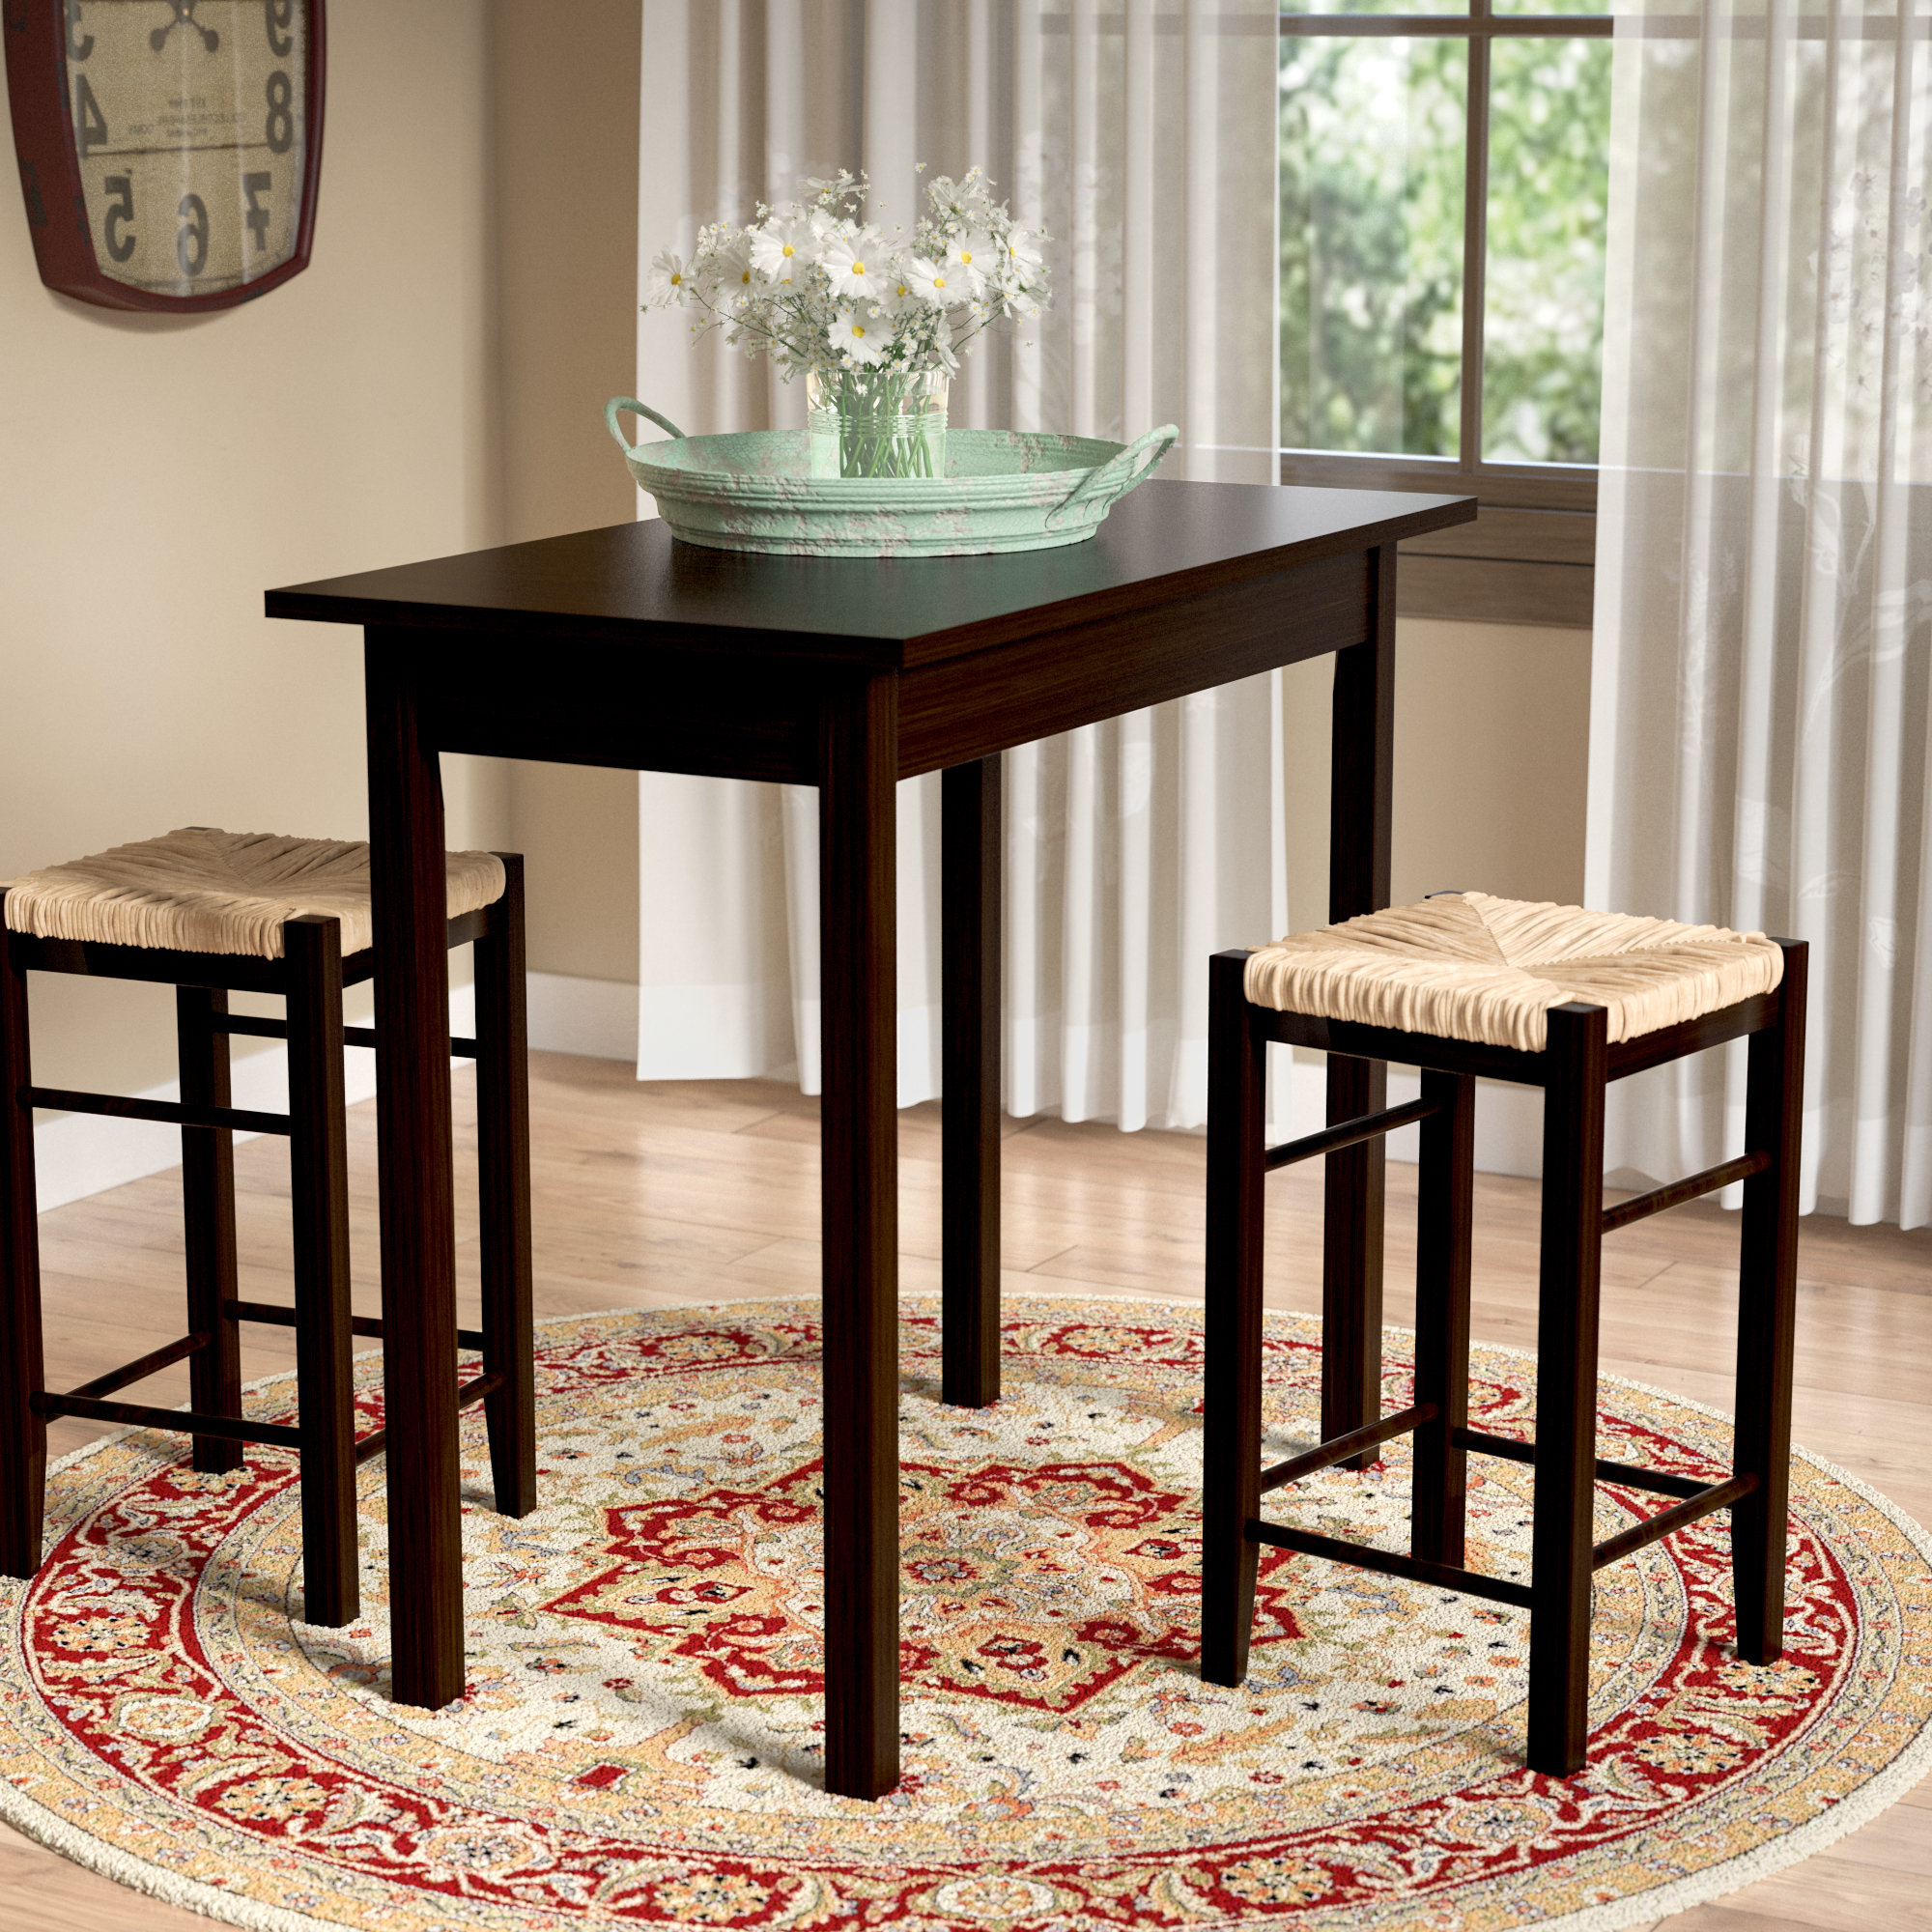 August Grove Tenney 3 Piece Counter Height Dining Set & Reviews With Regard To Well Known Nutter 3 Piece Dining Sets (View 2 of 25)